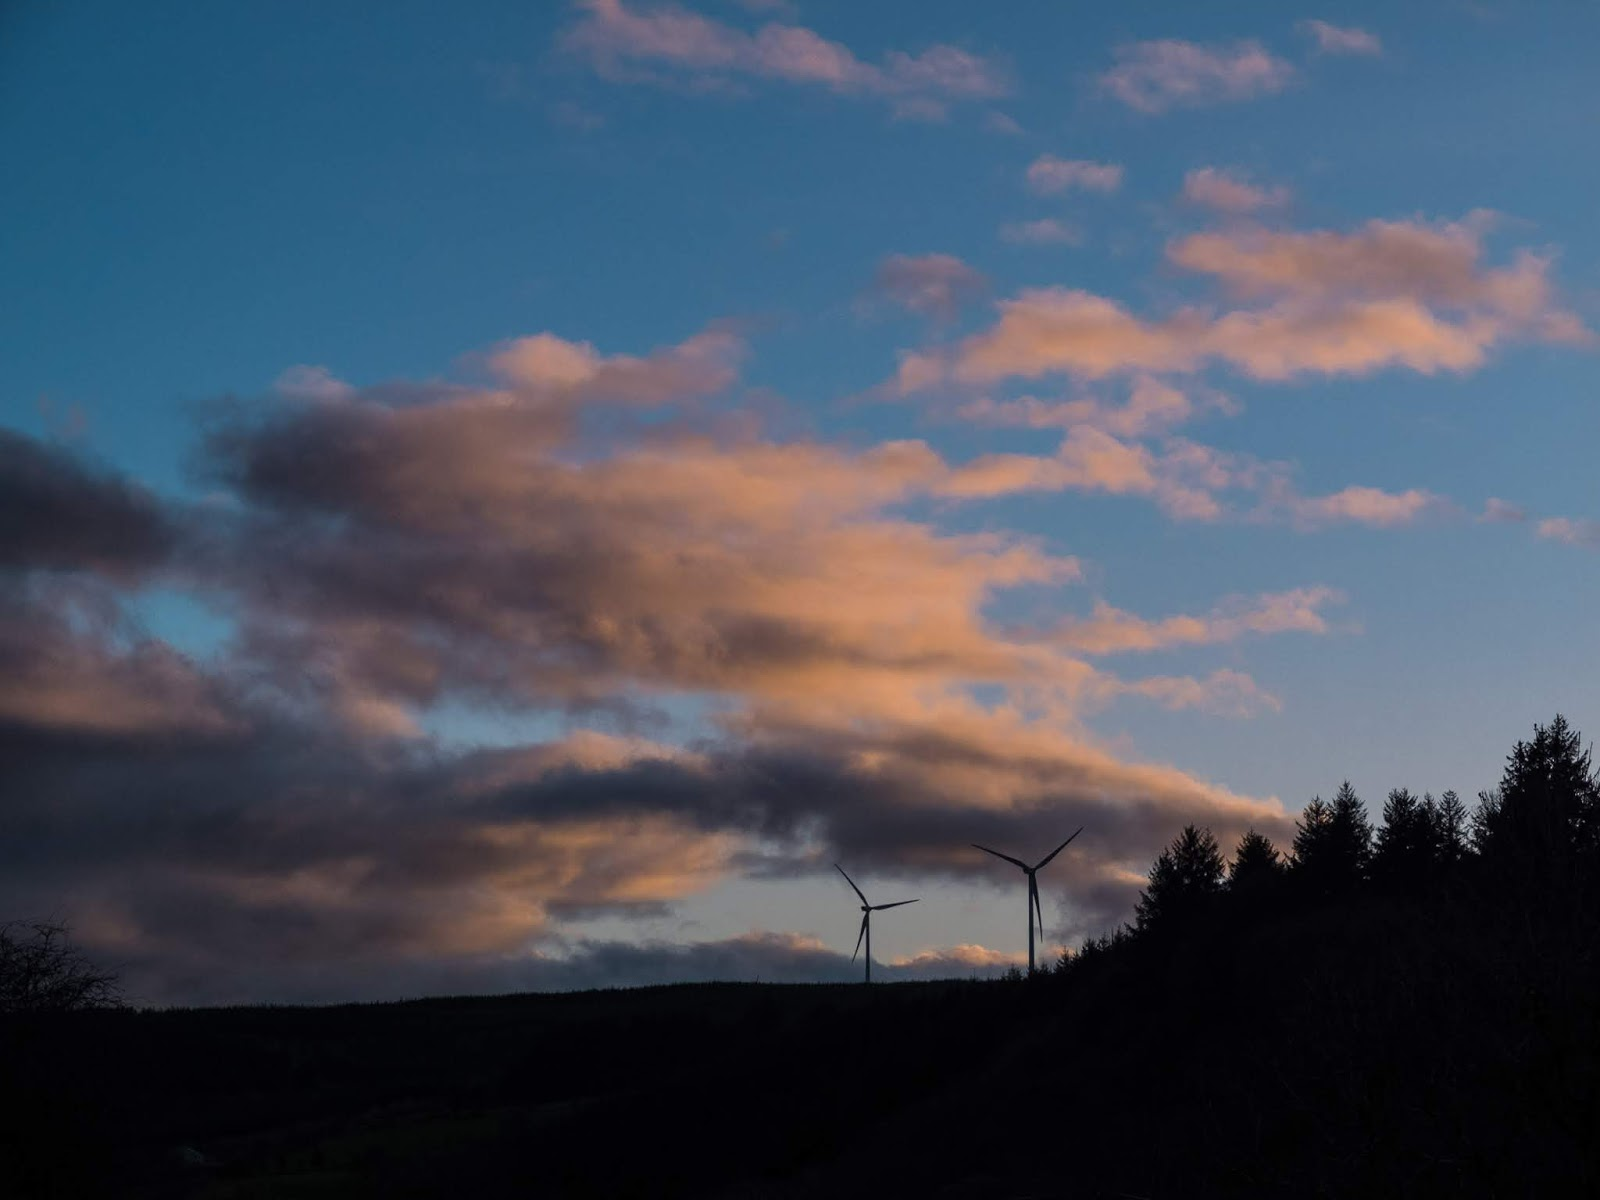 Windmill and forest landscape at sunset in the mountains of North Cork, Ireland.